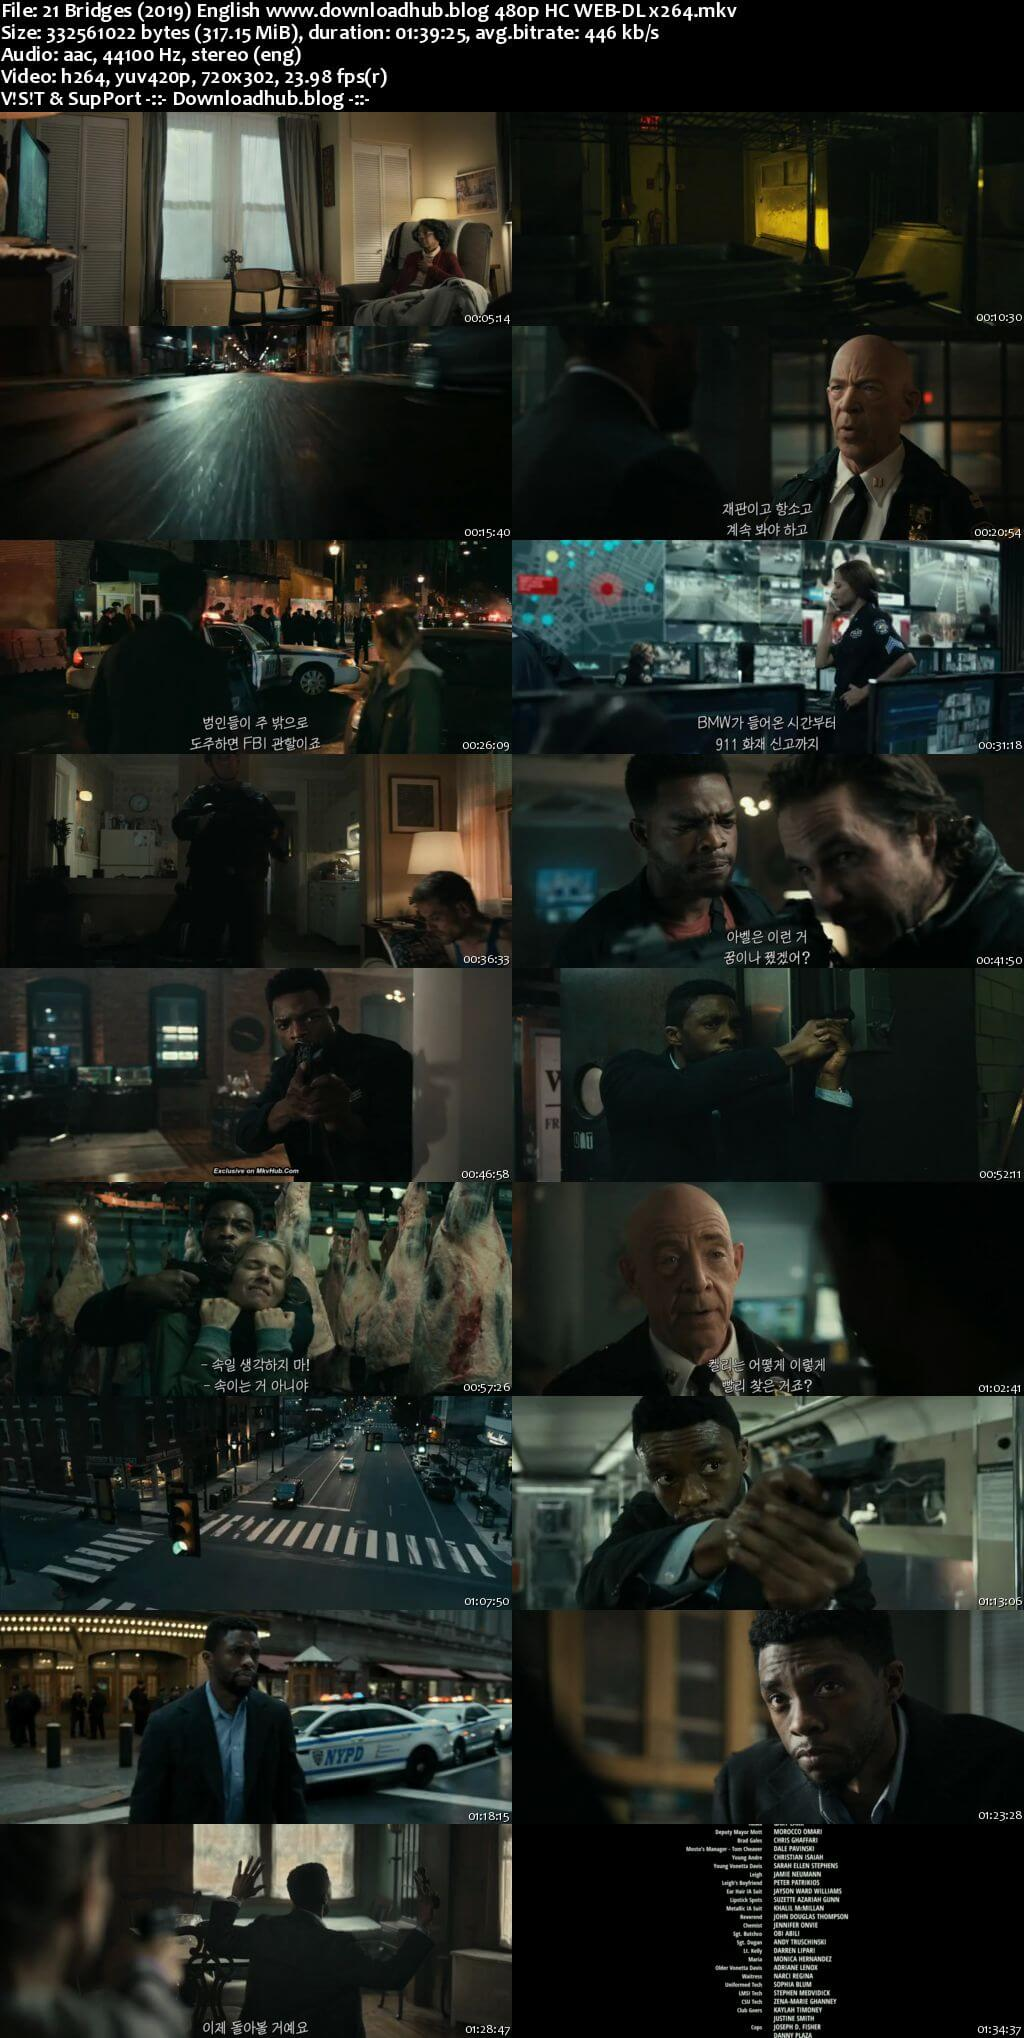 21 Bridges 2019 English 300MB HC HDRip 480p